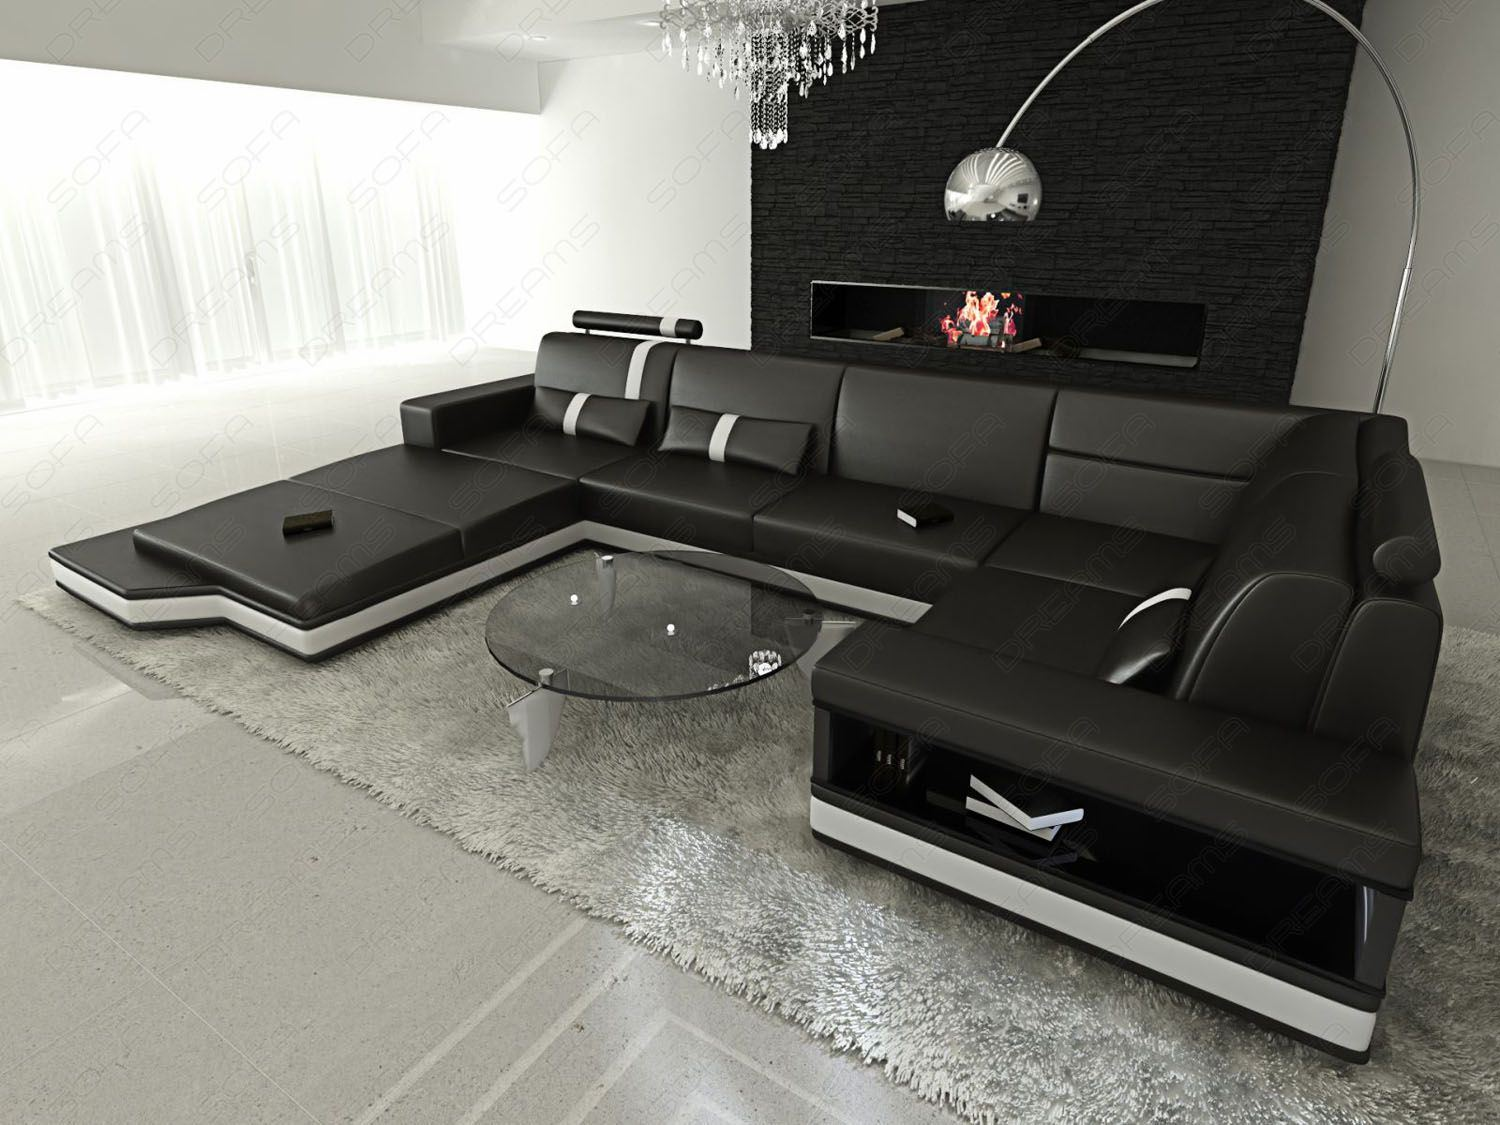 wohnlandschaft g nstig neuesten design kollektionen f r die familien. Black Bedroom Furniture Sets. Home Design Ideas